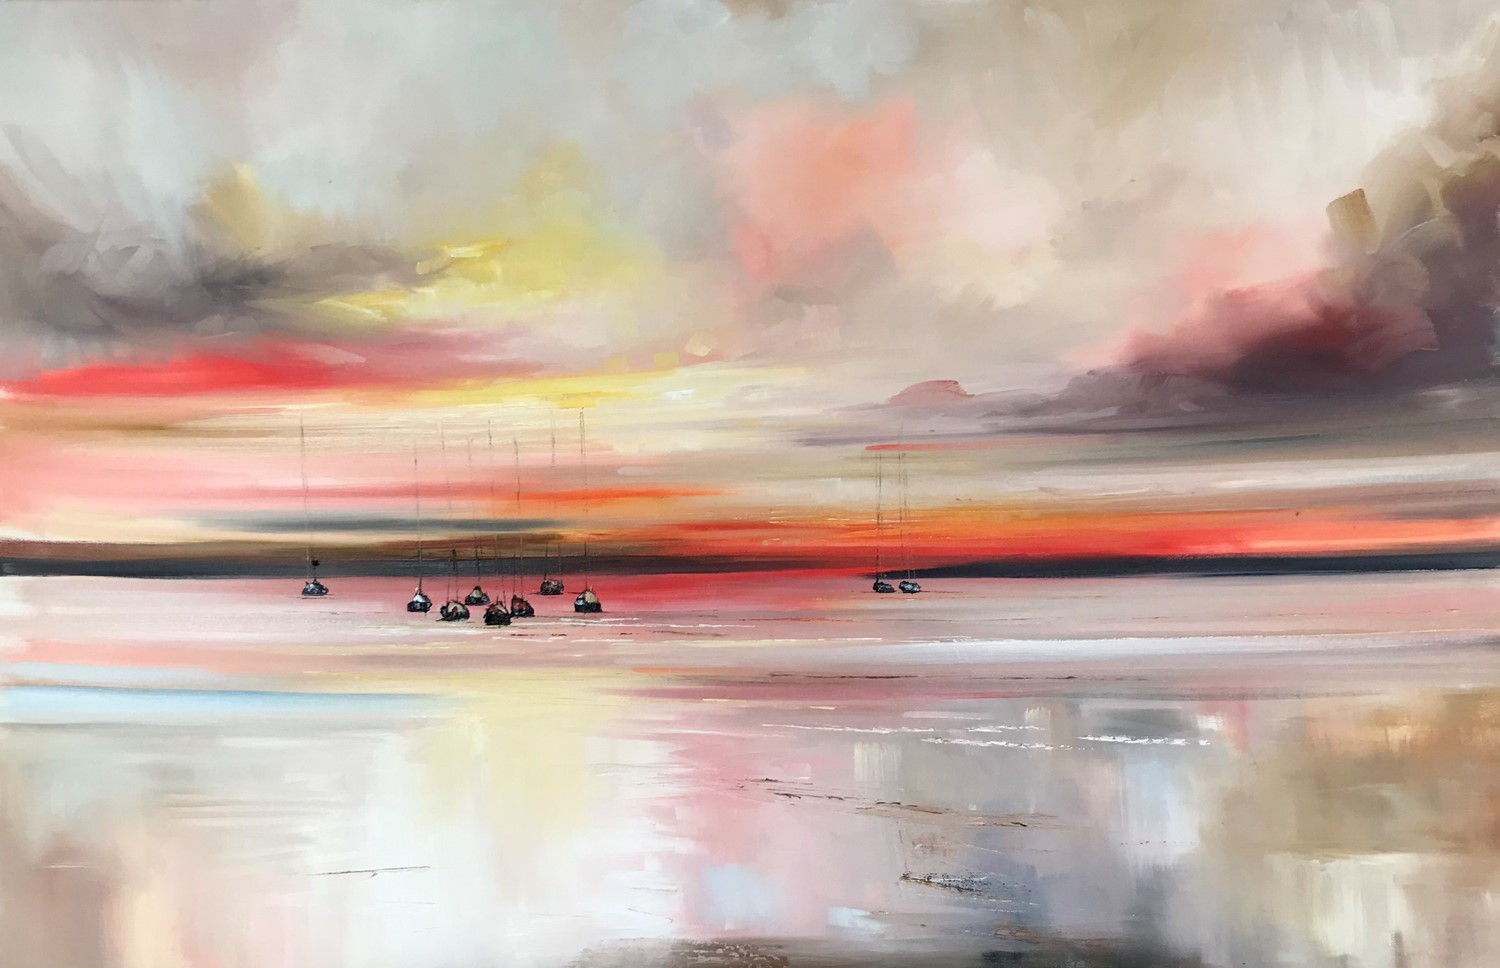 'Colours of sunset echoed across the water ' by artist Rosanne Barr